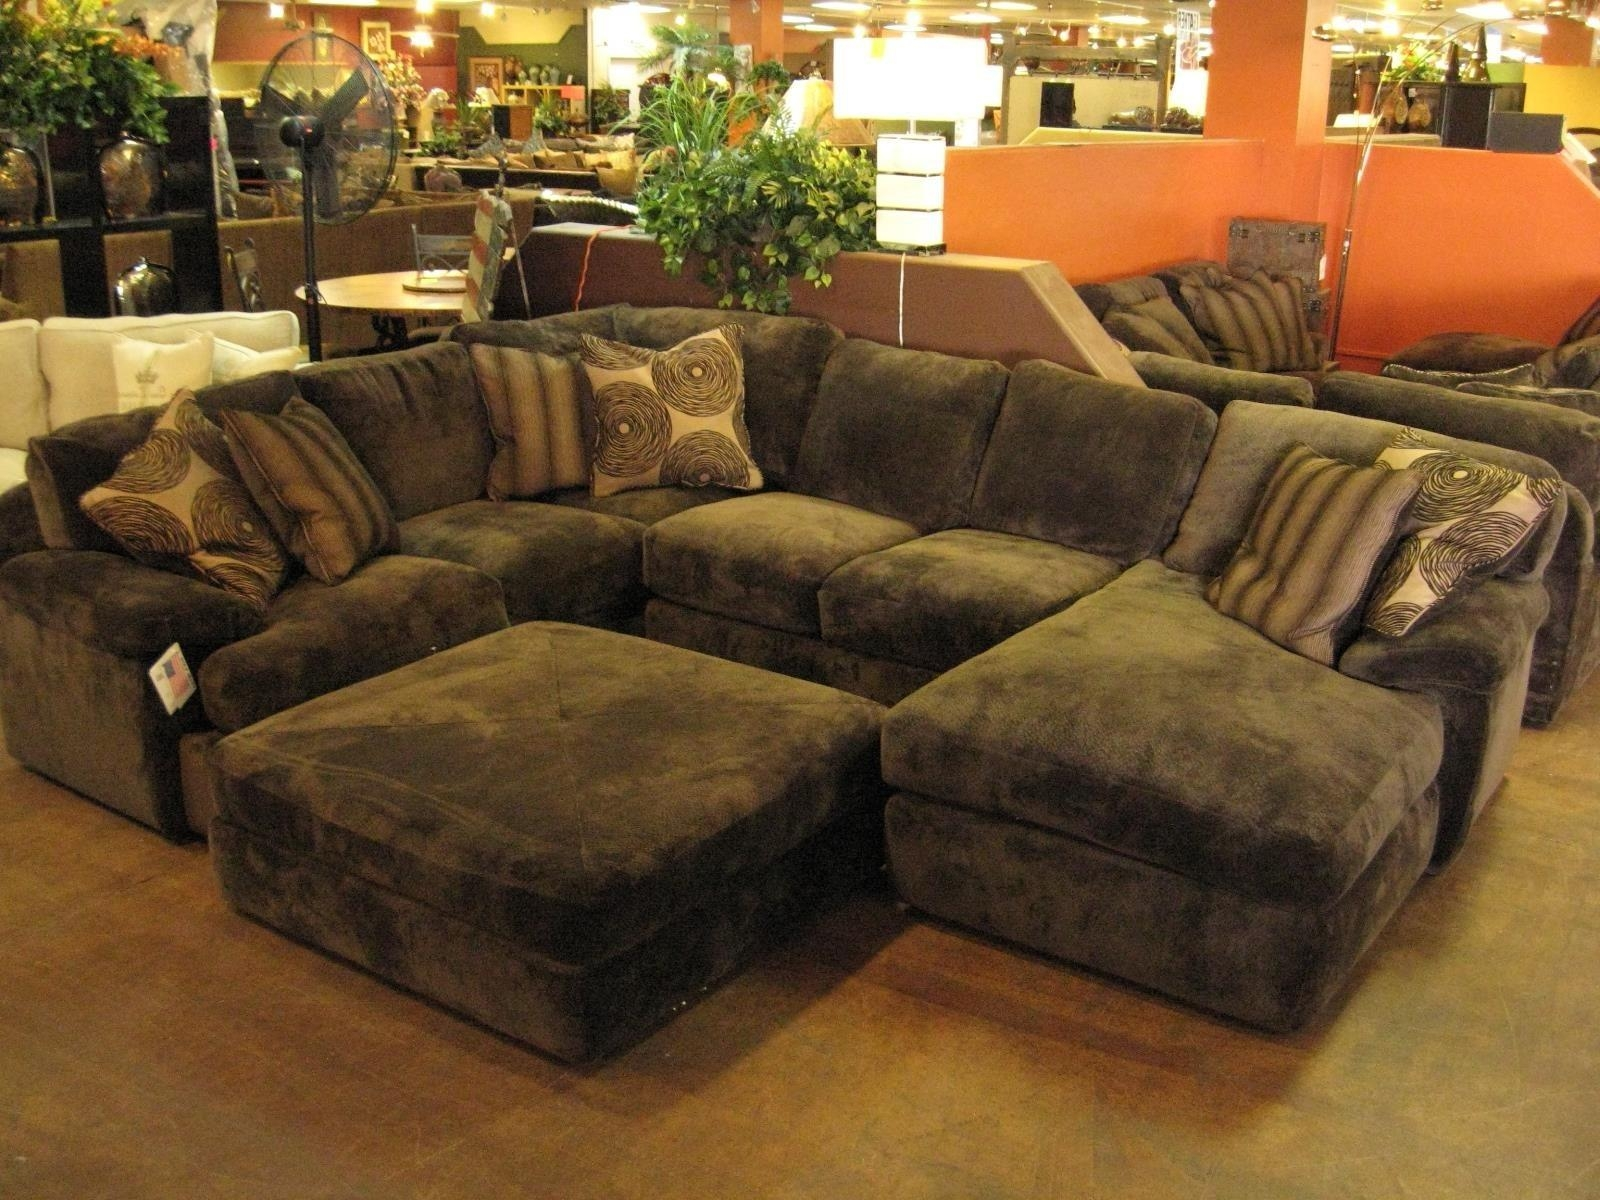 Sofas Center : Large Sectional Sofas With Chaise Southnextus For Sectional Sofa With Large Ottoman (View 7 of 20)